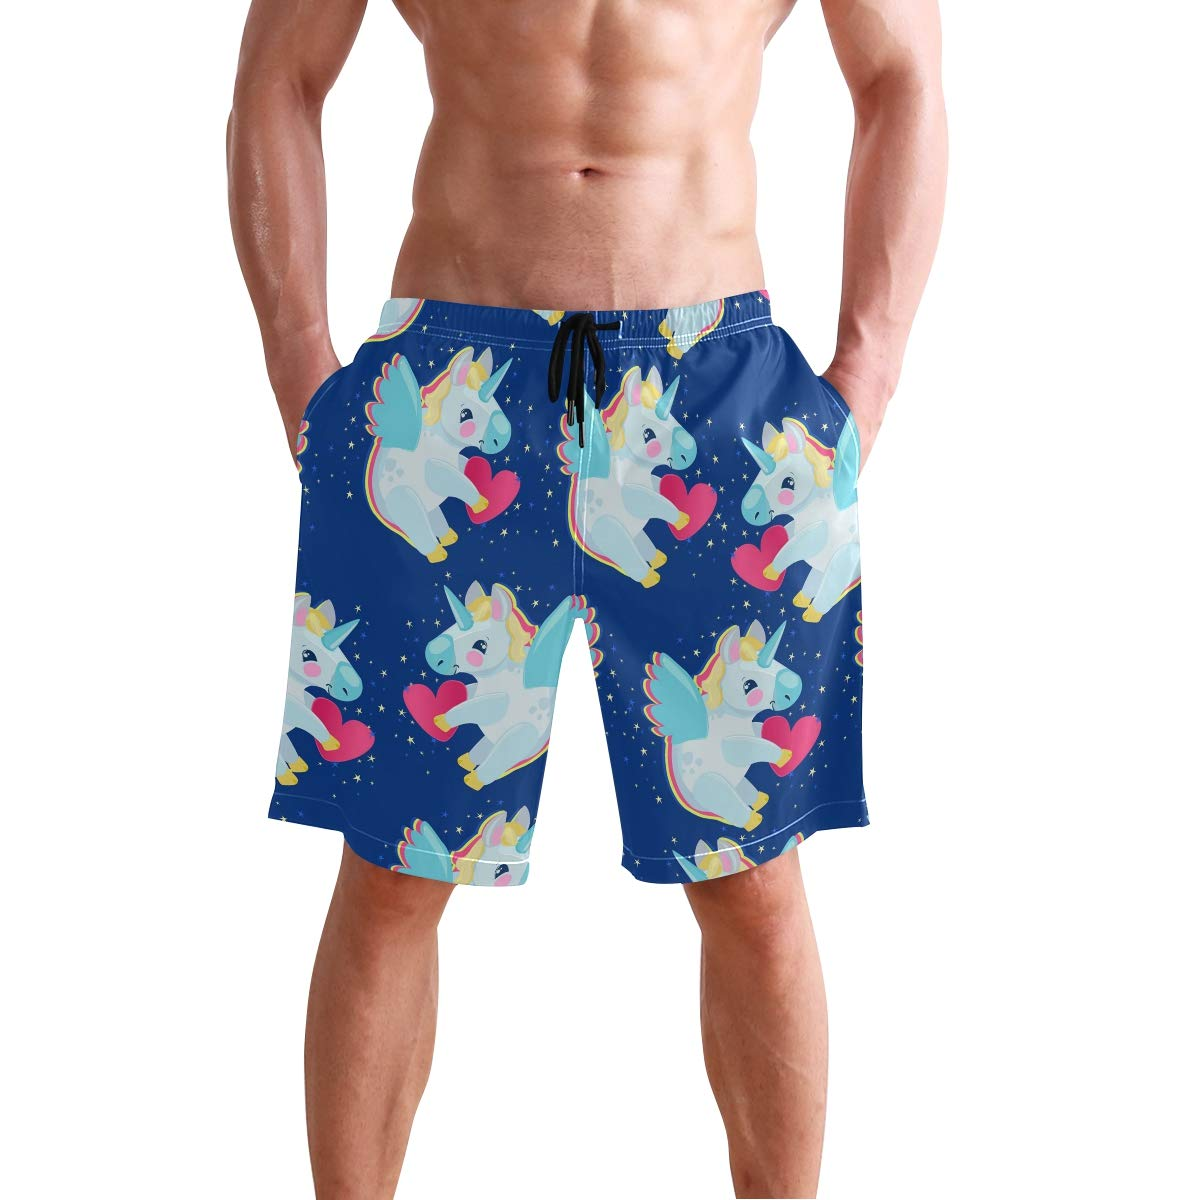 Mens Beach Swim Trunks Magic Unicorn Red Hearts Boxer Swimsuit Underwear Board Shorts with Pocket